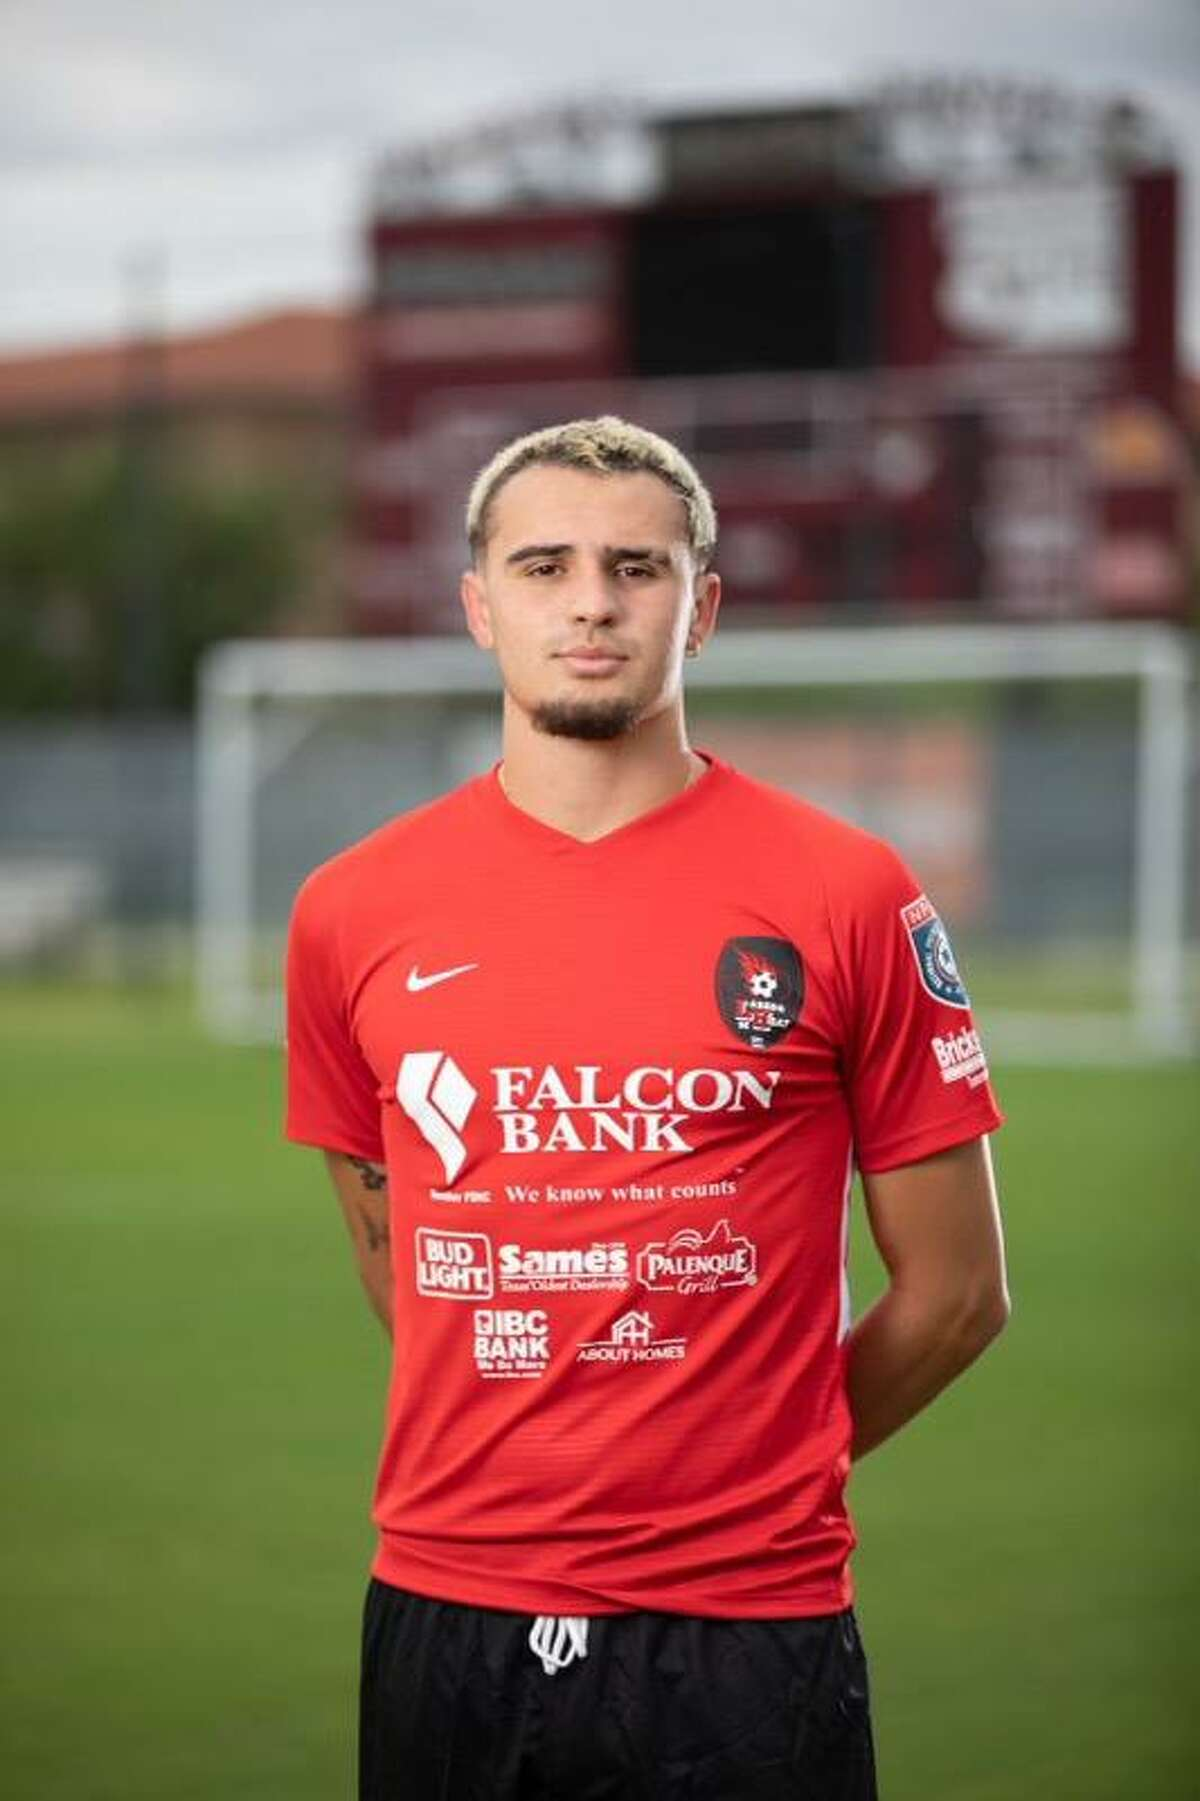 Gabriel Claudio plays right back for the Laredo Heat this season.